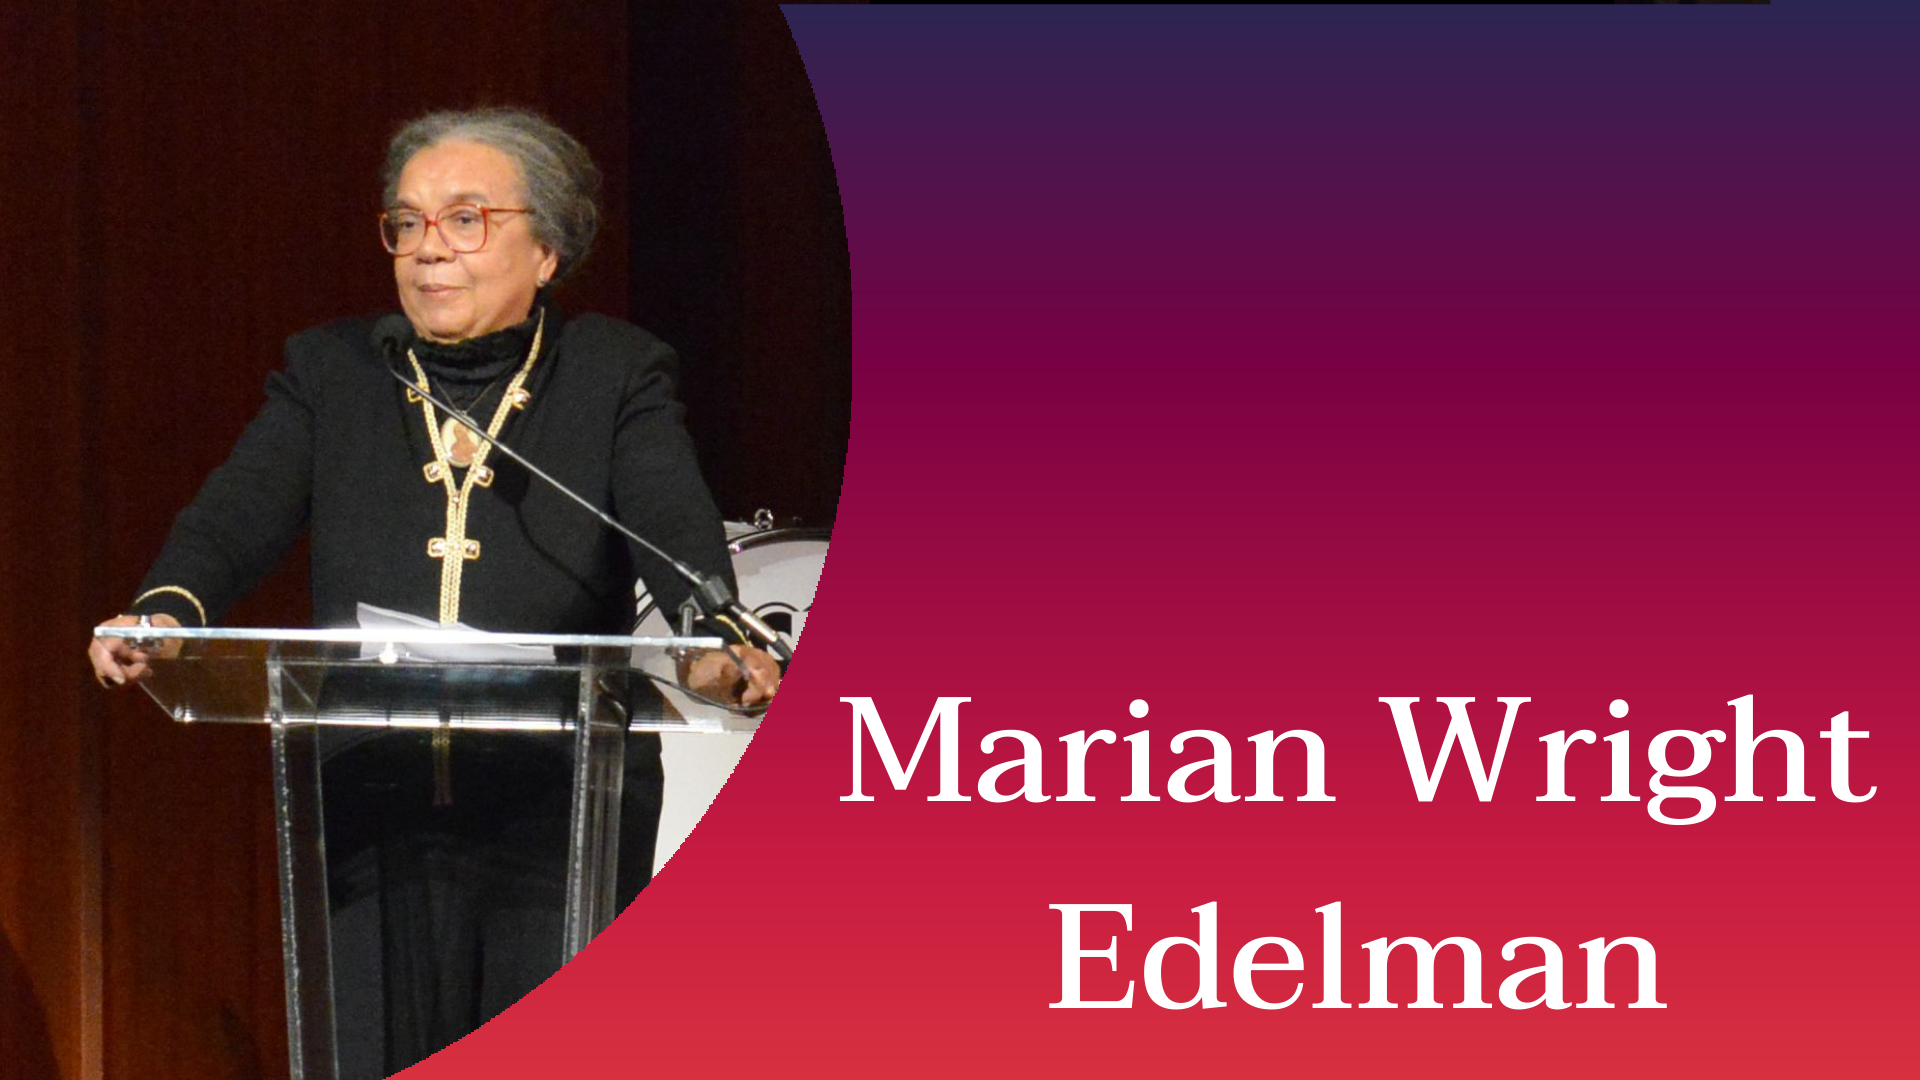 Marian Wright Edelman on stage with a drum set behind her. She is dressed in a black suit with a yellow collar and wearing a medal on her neck. There is a microphone stand in front of her and her mouth is above the microphone. Next to her is a curve of an orange, pink, and purple color palette with her name written in white.